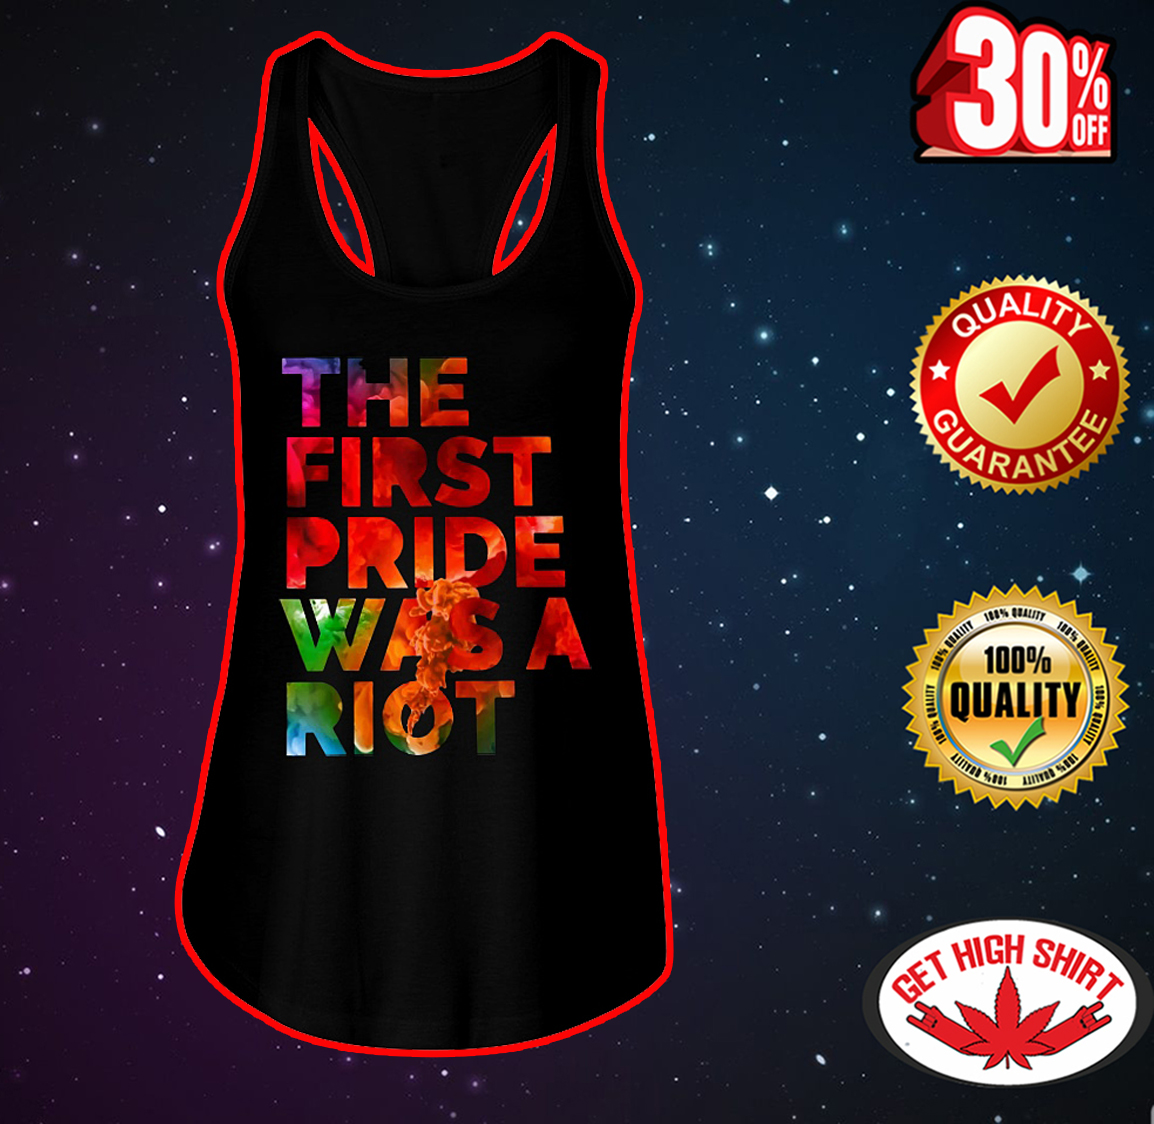 The first pride was a riot flowy tank